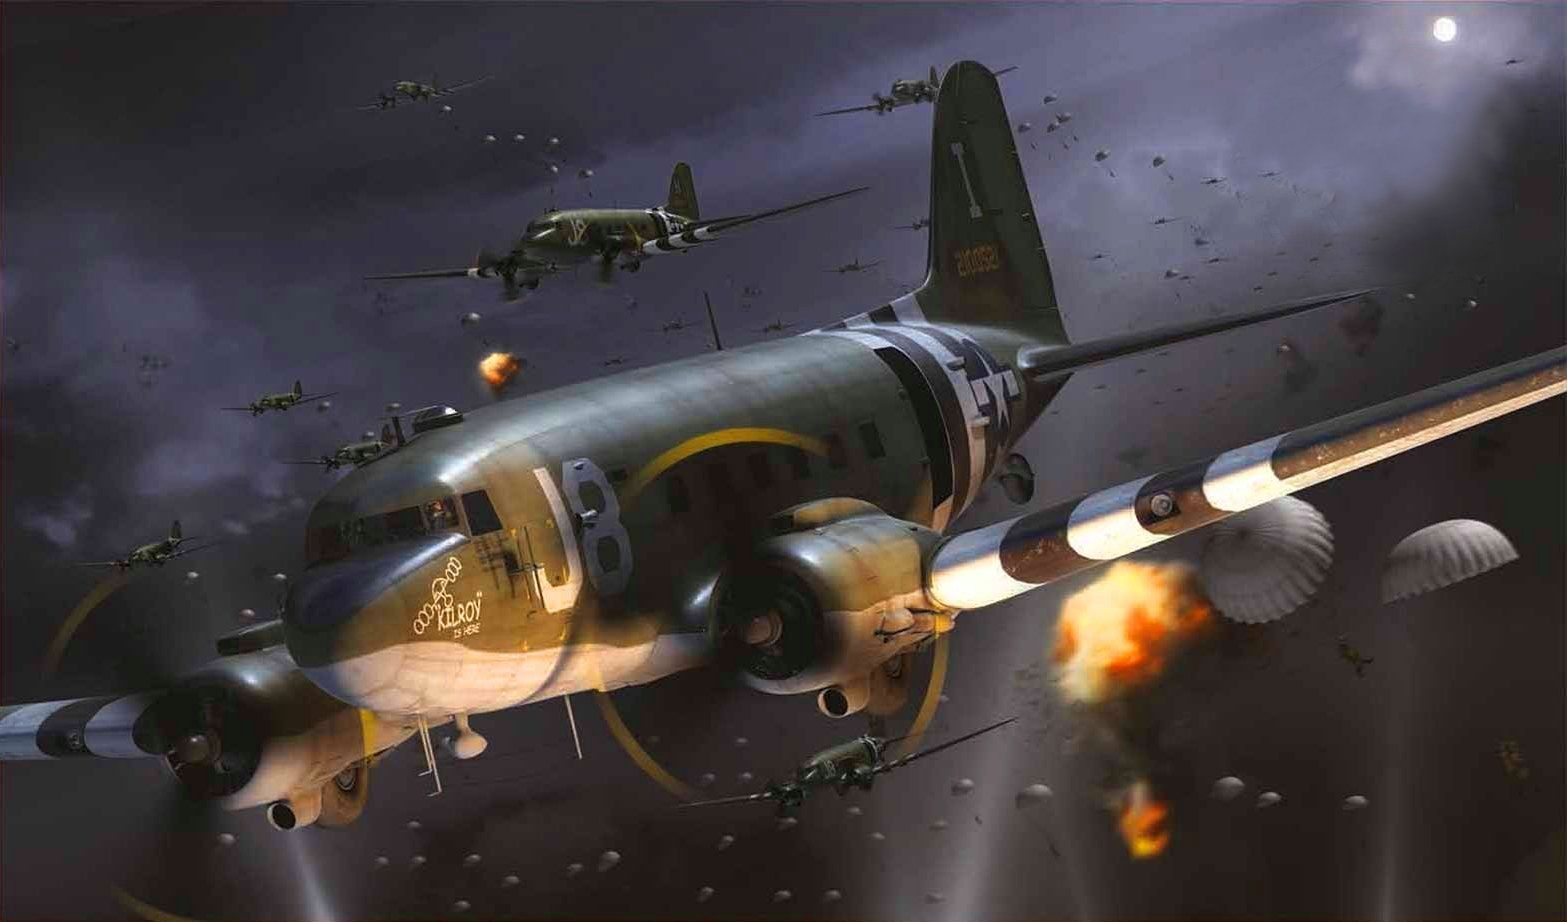 Douglas c 47 skytrain d day by adam tooby allied planes douglas c 47 skytrain d day by adam tooby fandeluxe Gallery